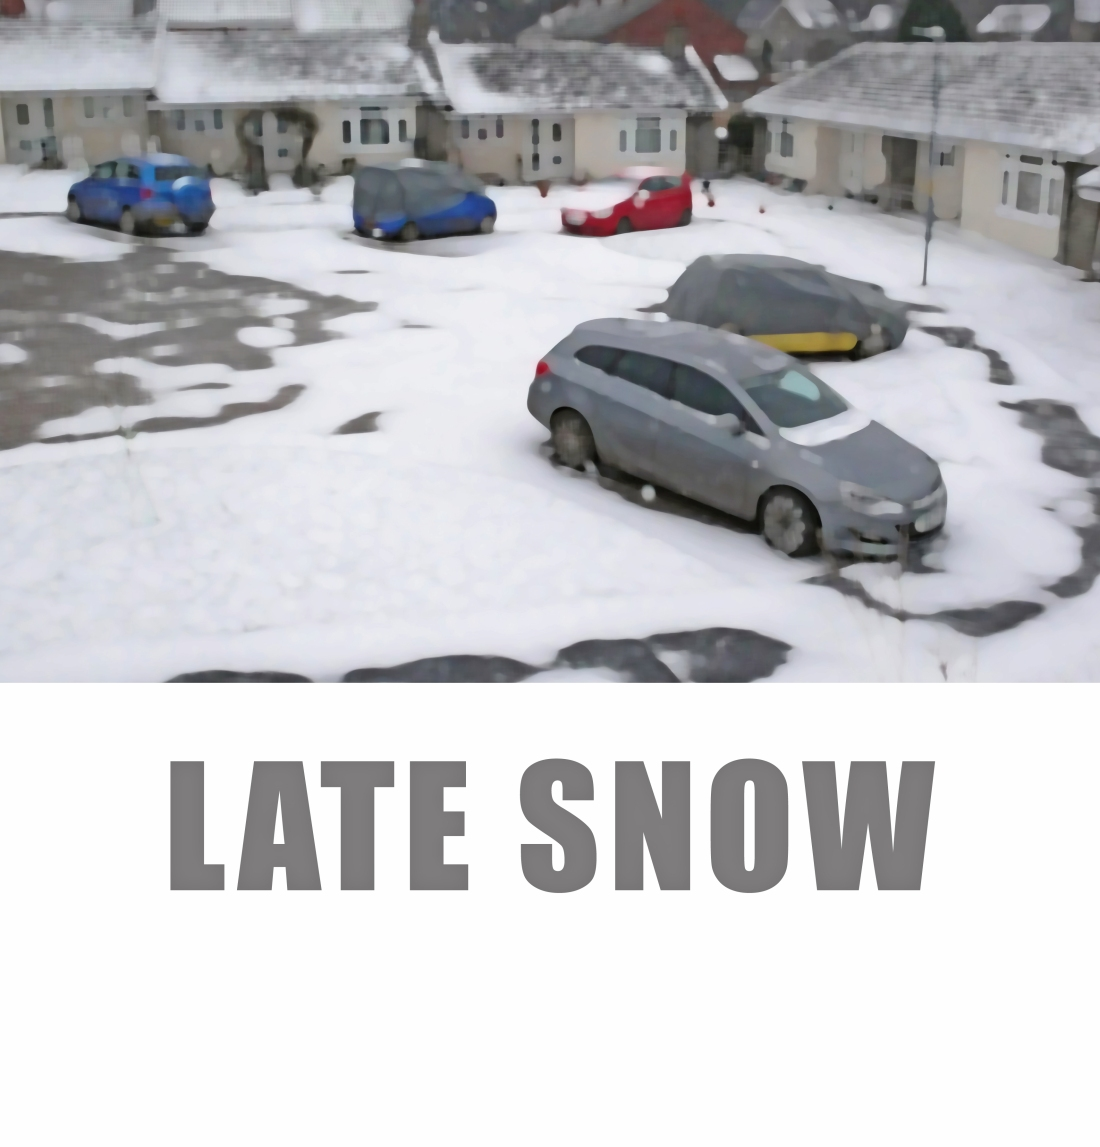 LATE SNOW - FINAL TITLE PAGE